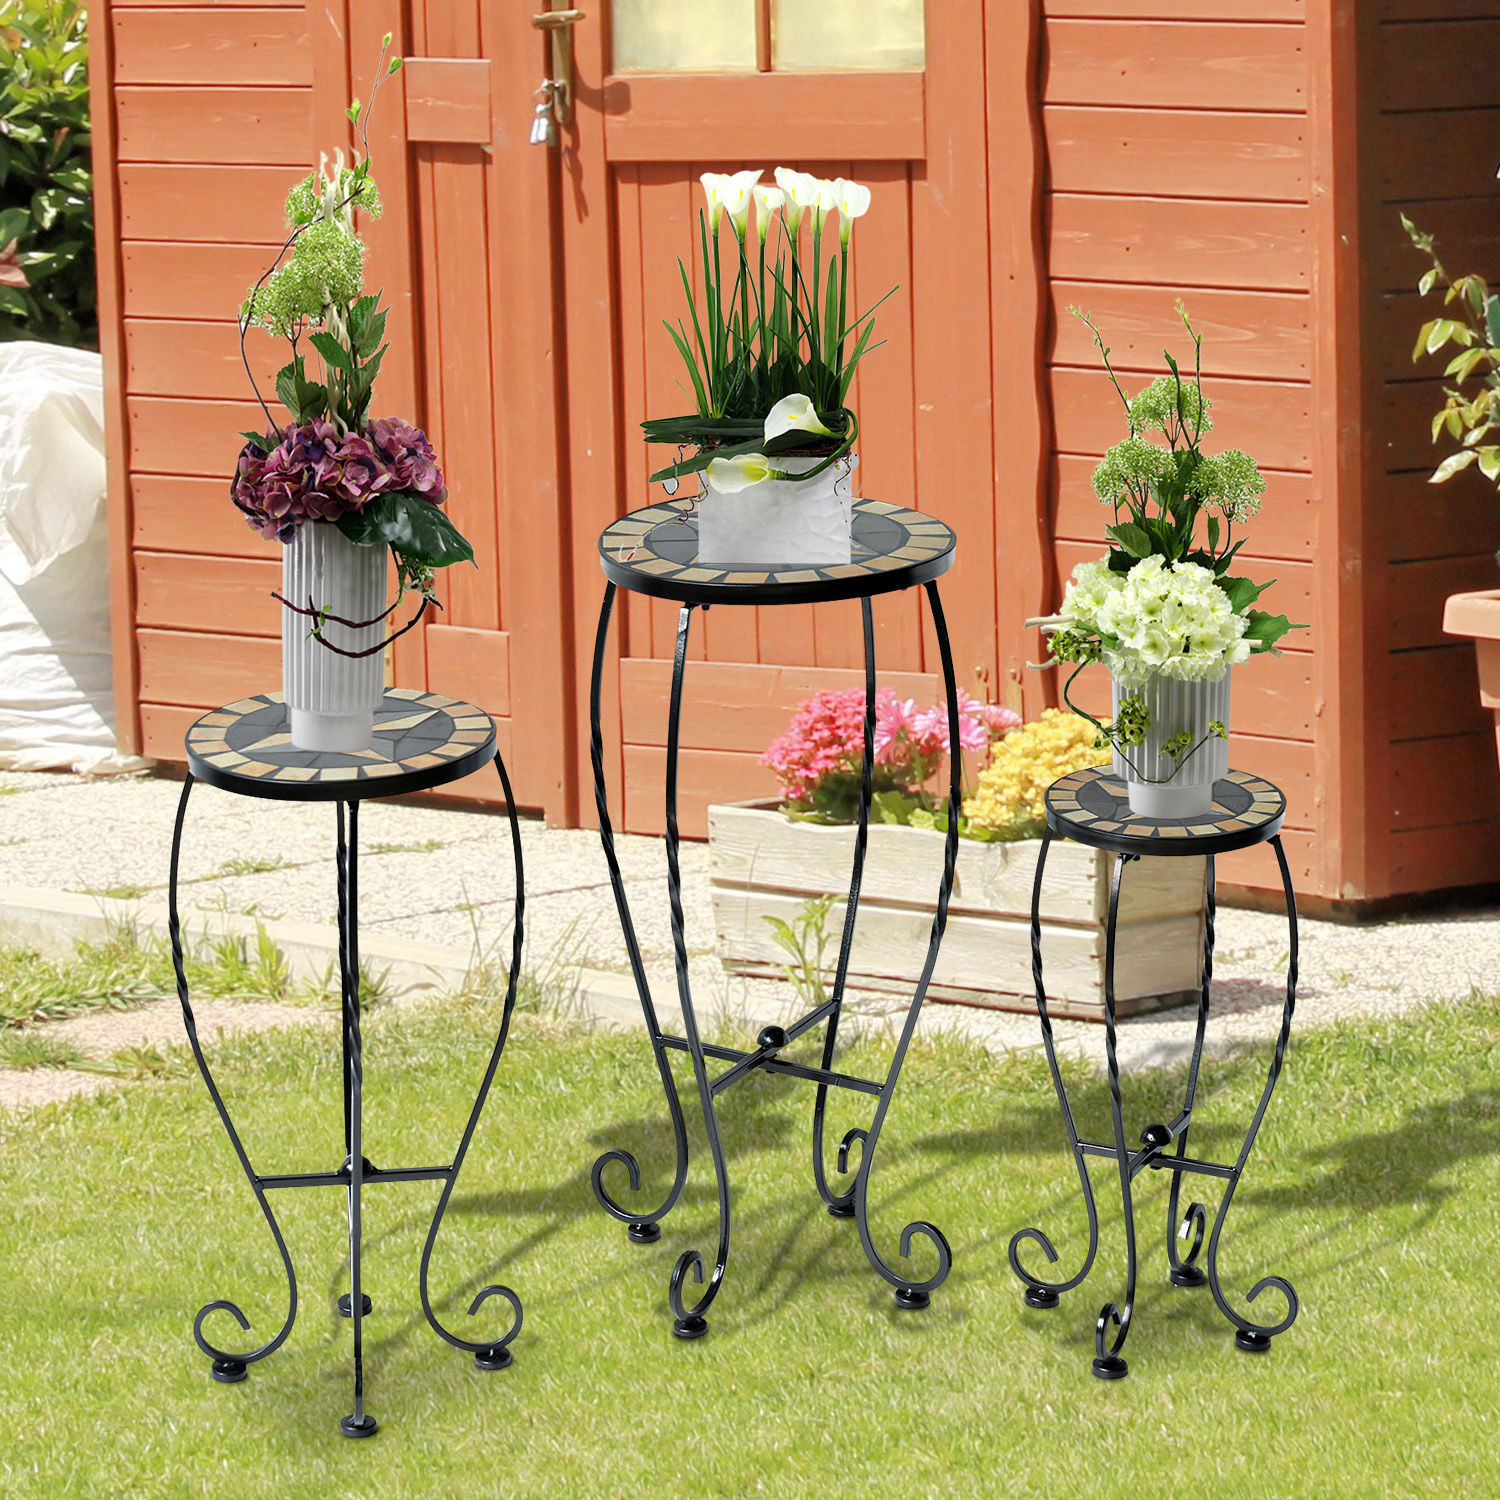 Image of £35.99 Outsunny 3 Pcs Plant Stand Table Set W/Mosaic Pattern-Black Iron / of Outdoor Round Bistro Flower Mosaic Garden Display Rack Stool Stands Home Décor 845-033 5055974841840